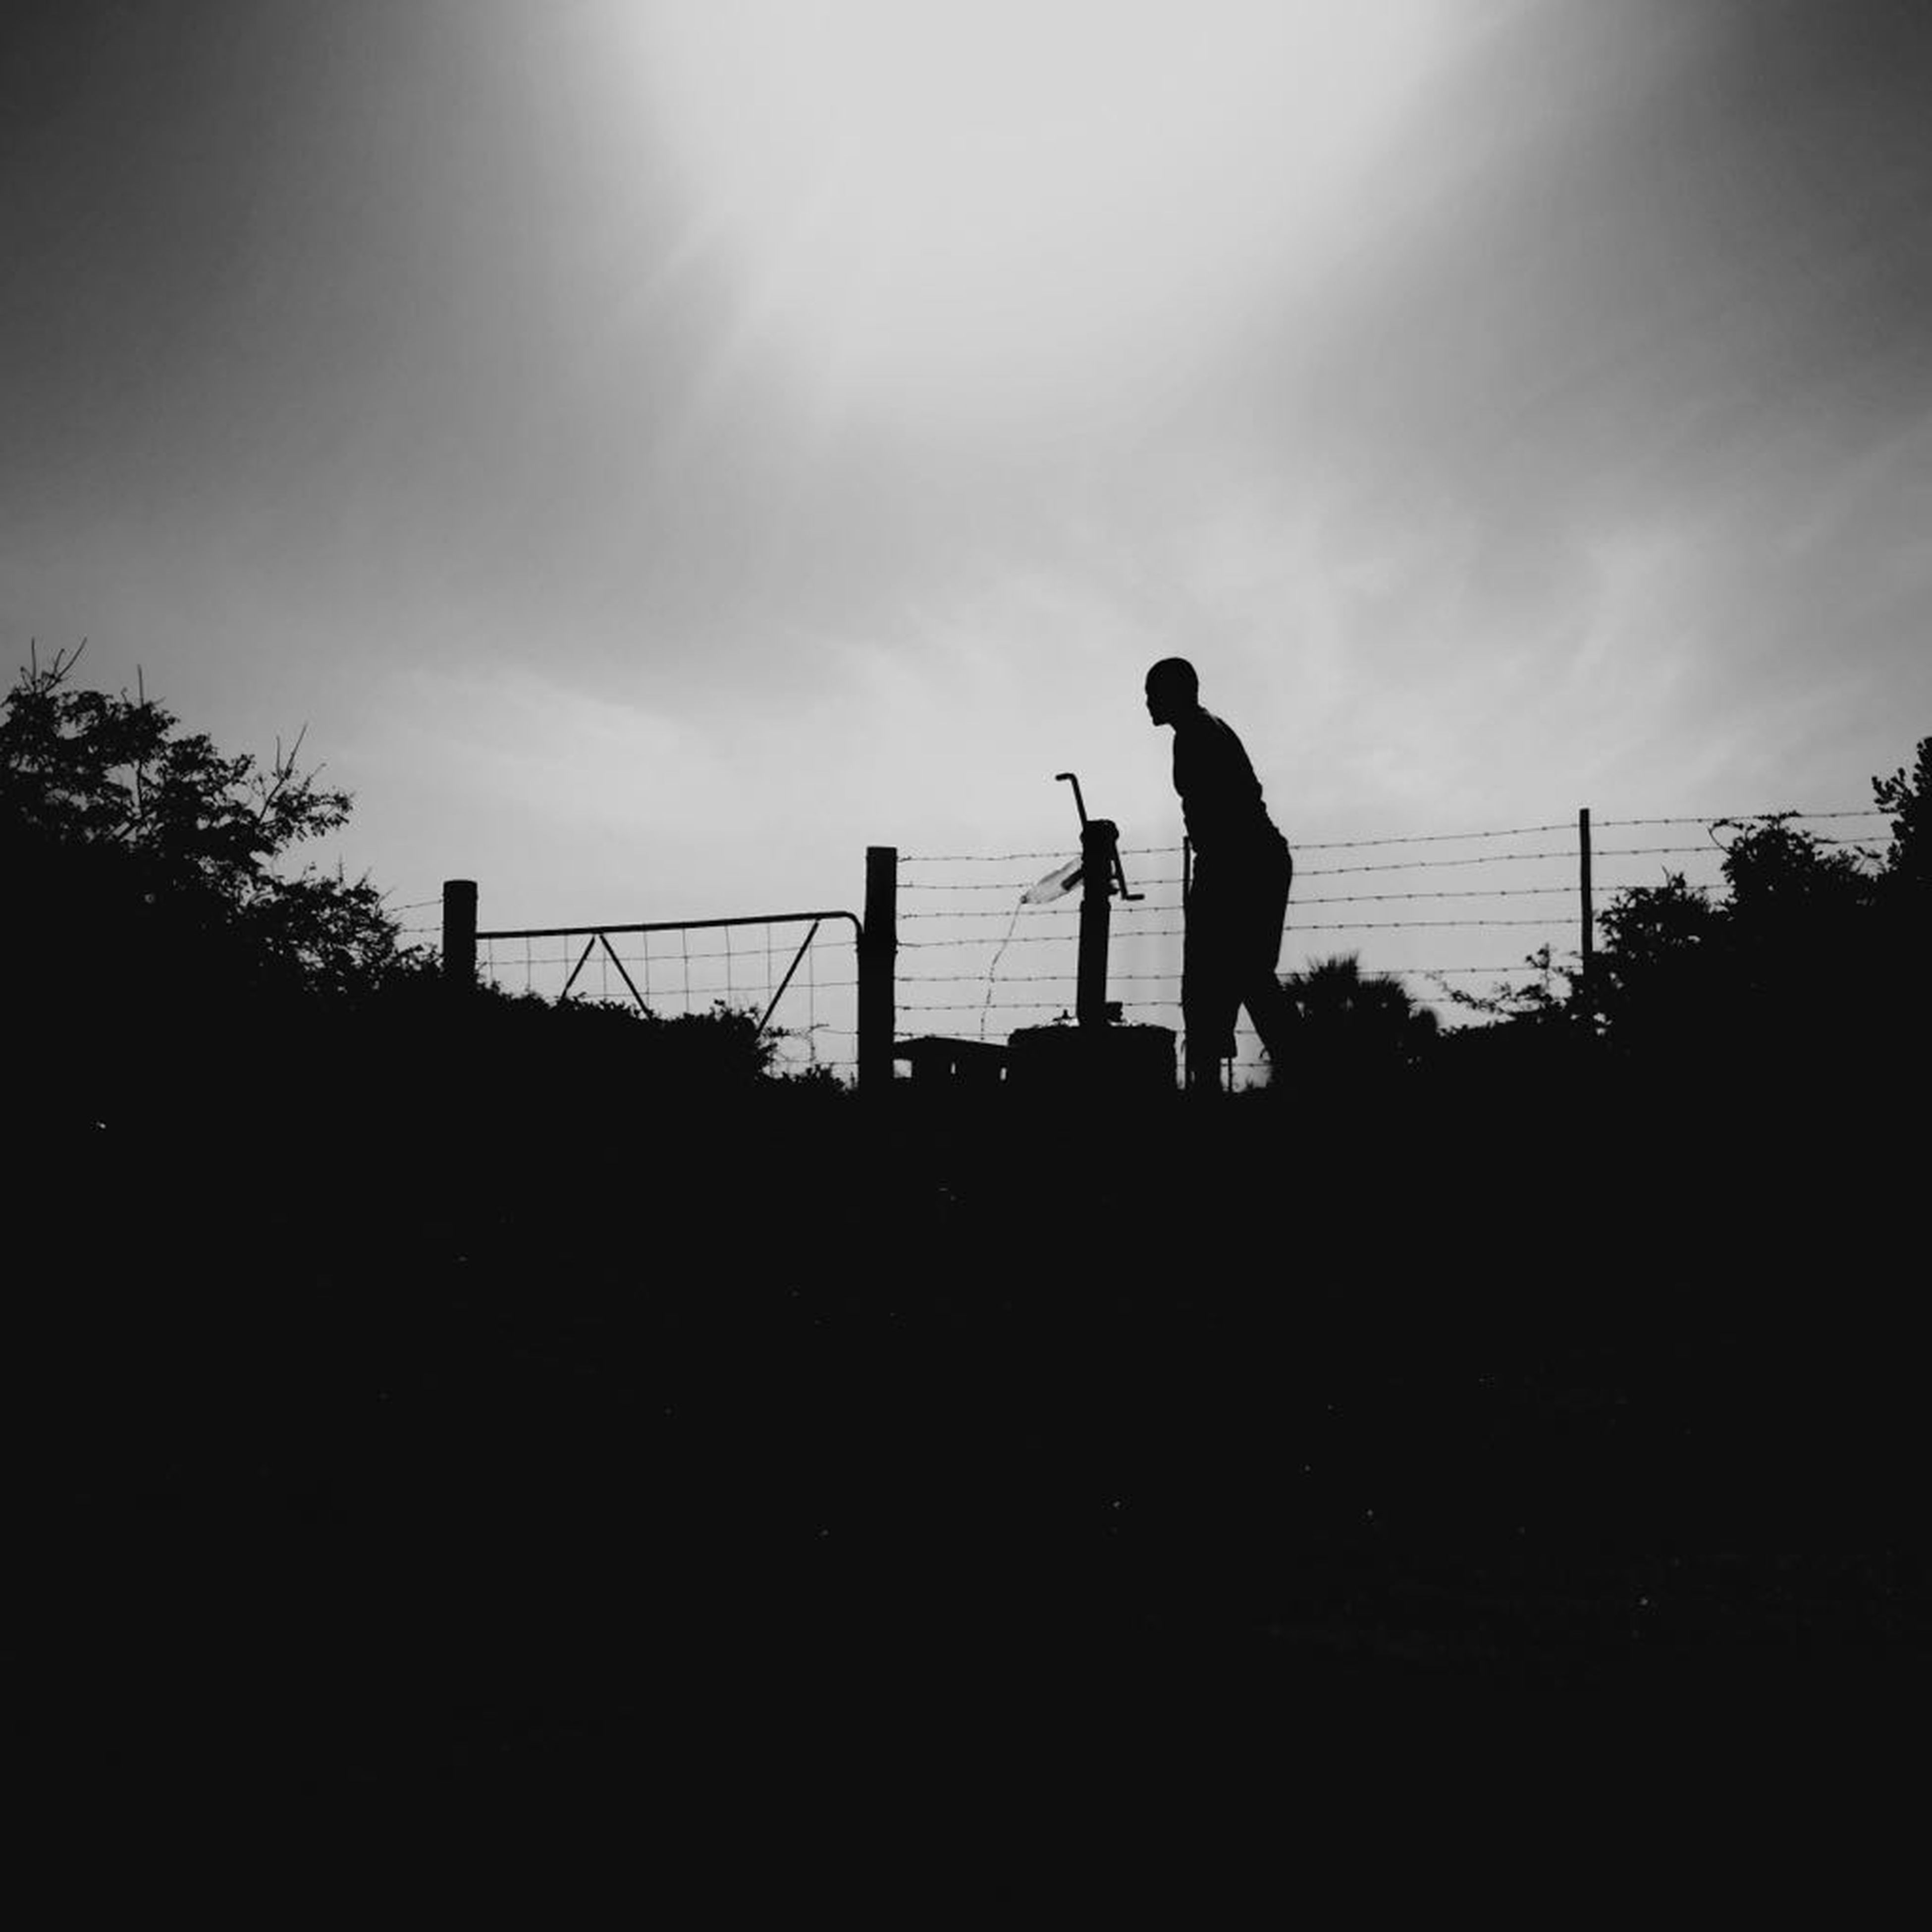 silhouette, real people, leisure activity, lifestyles, two people, standing, sky, men, outdoors, nature, full length, friendship, day, adult, people